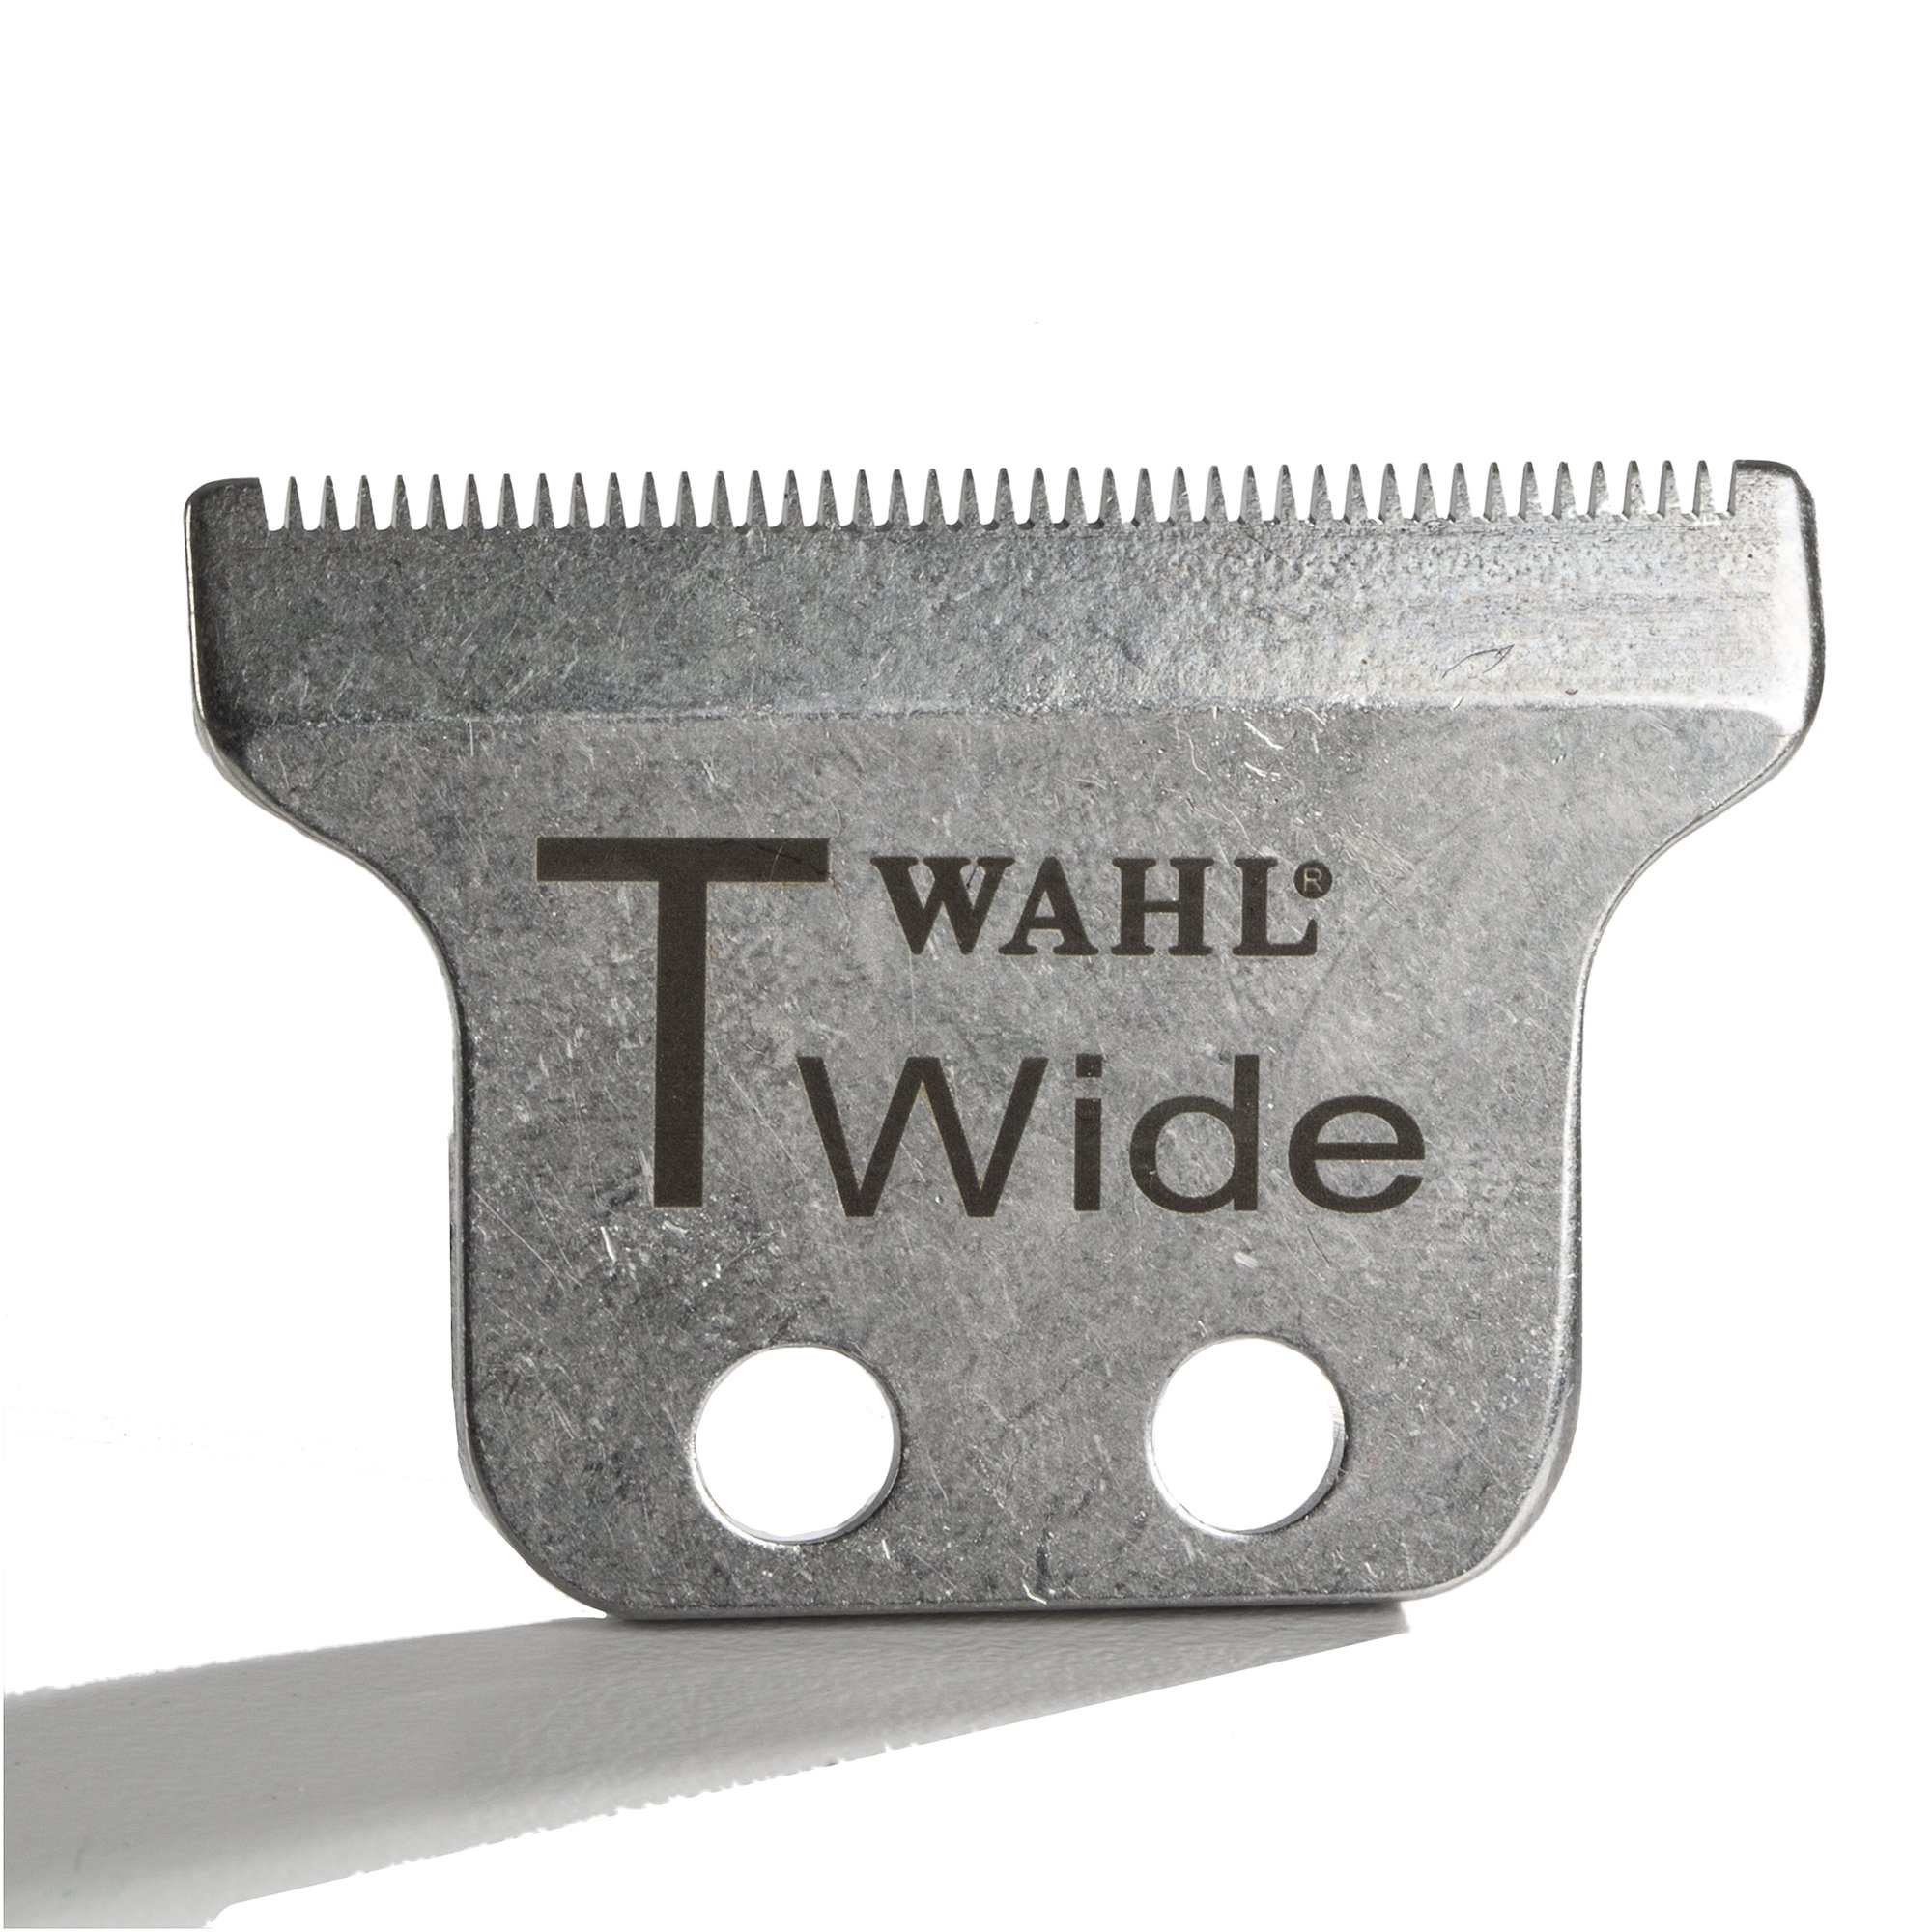 Wide Professional T-Wide Adjustable Trimmer Blade Set #2215 – For the 5 Star Series Detailer – Includes Oil, Screws & Instructions by Wahl Professional (Image #3)